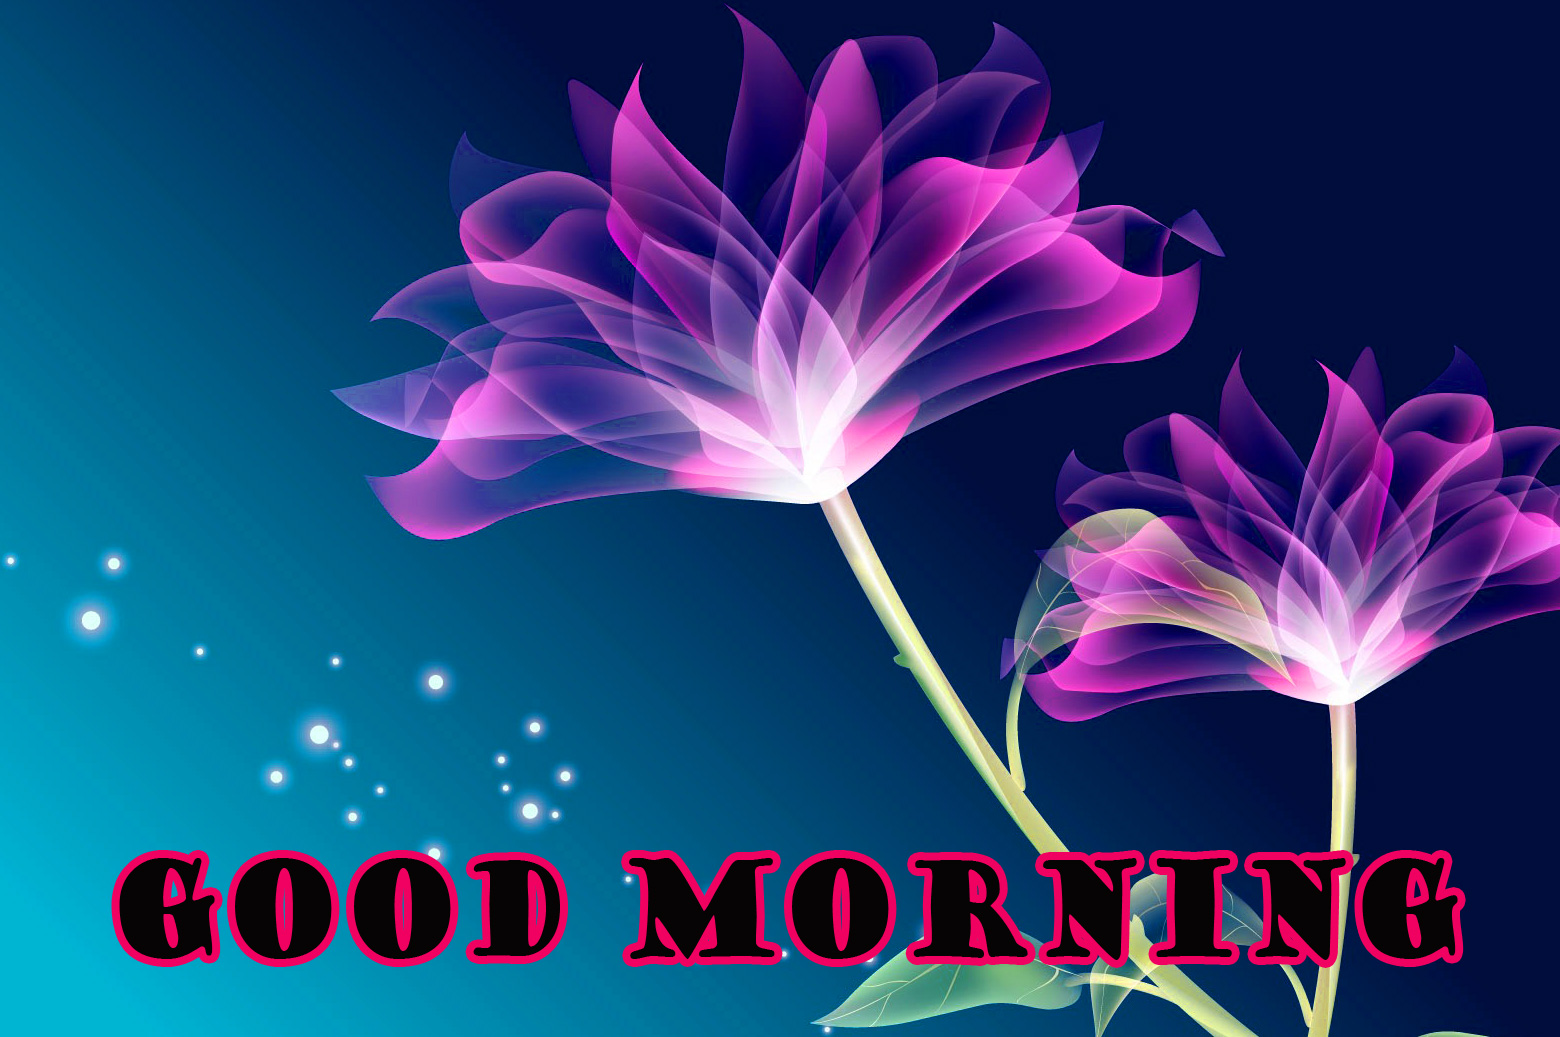 Good Morning Flowers Wallpaper Pictures Images Download